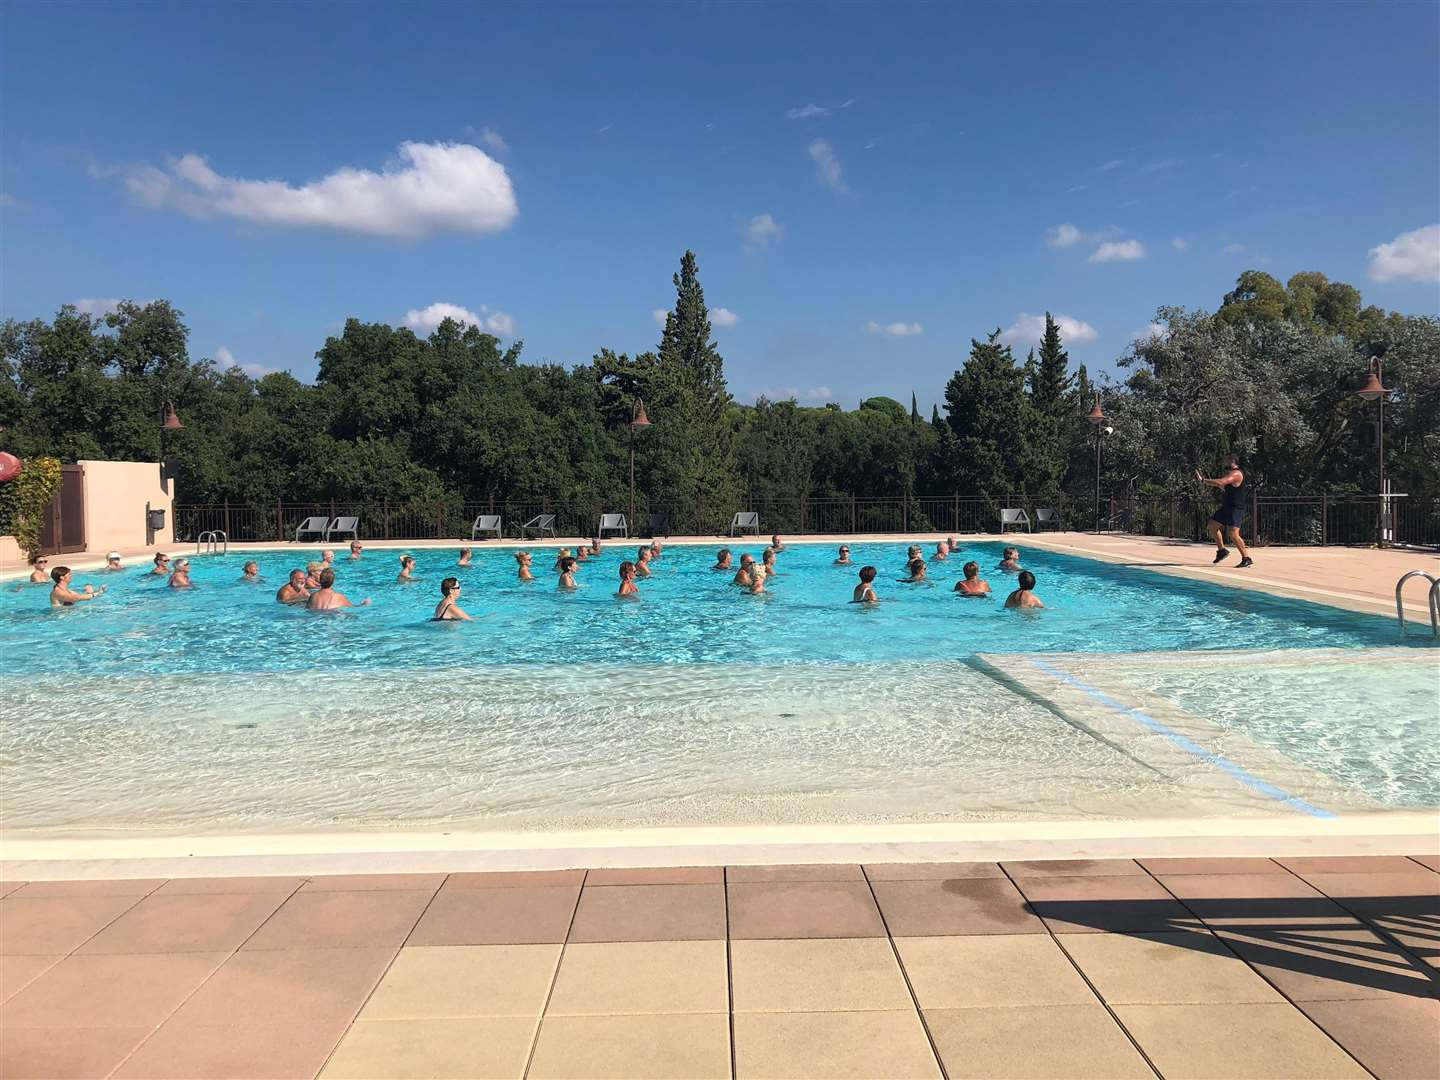 Water aerobics in the pool (7102913)